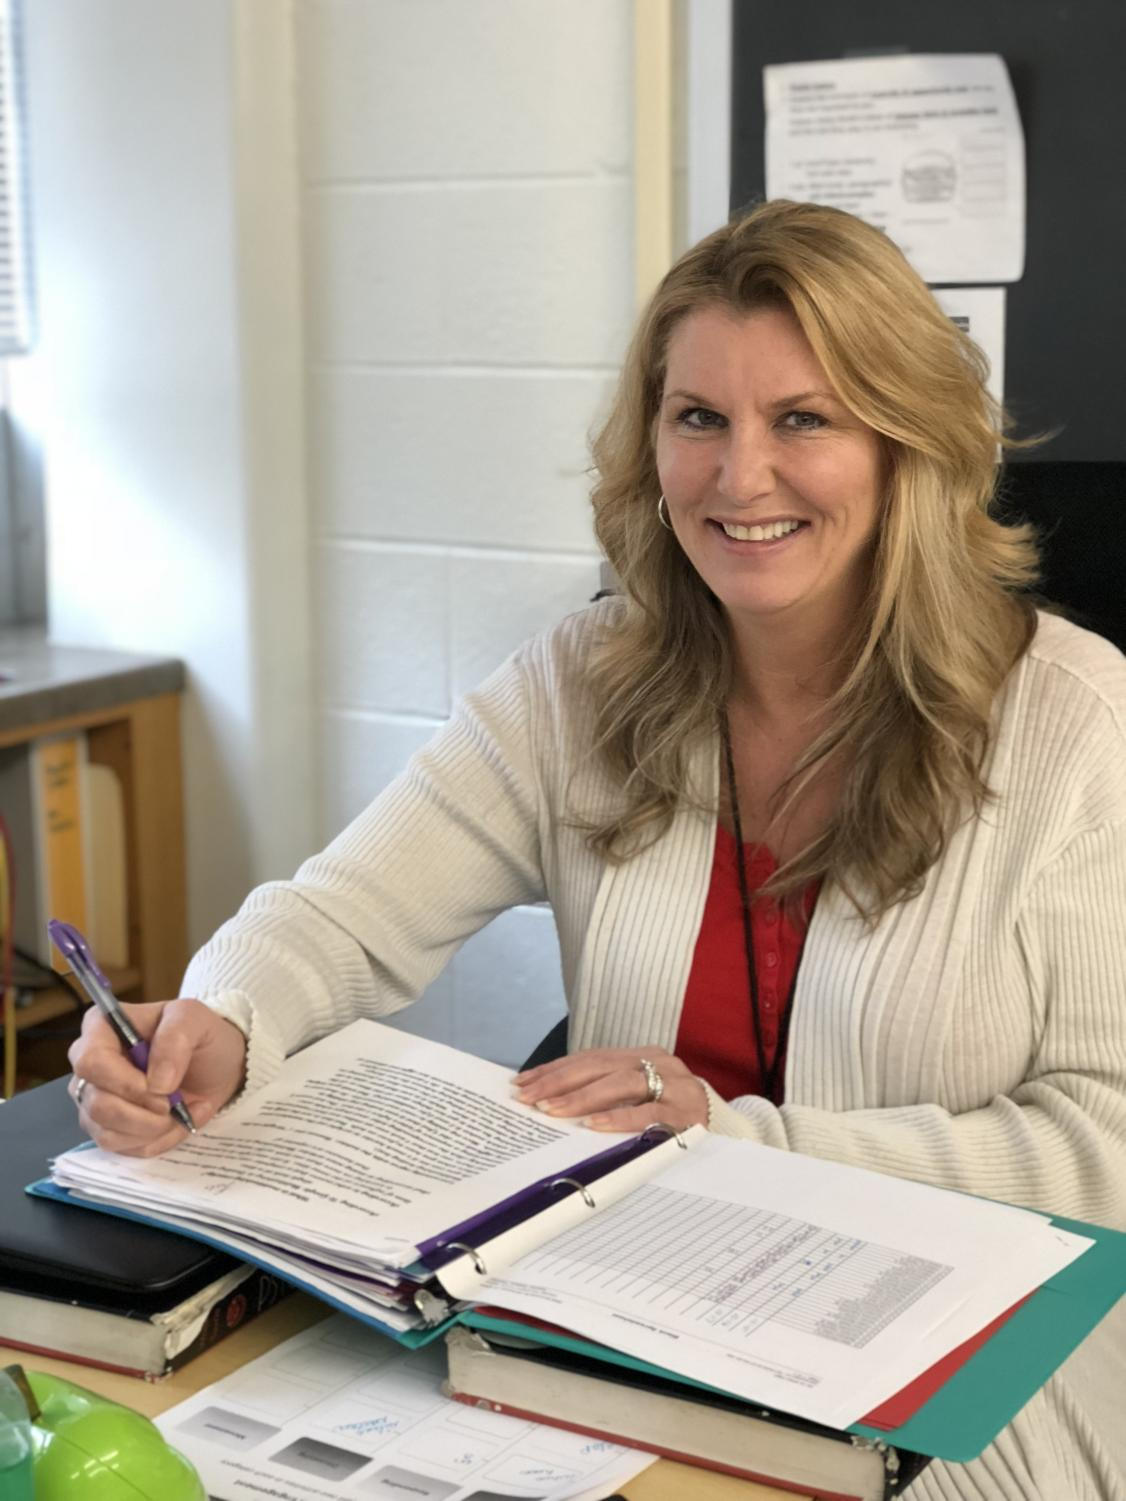 Melissa Wallace/Bertelsen is a social studies and psychology teacher that represents the meaning of authenticity.